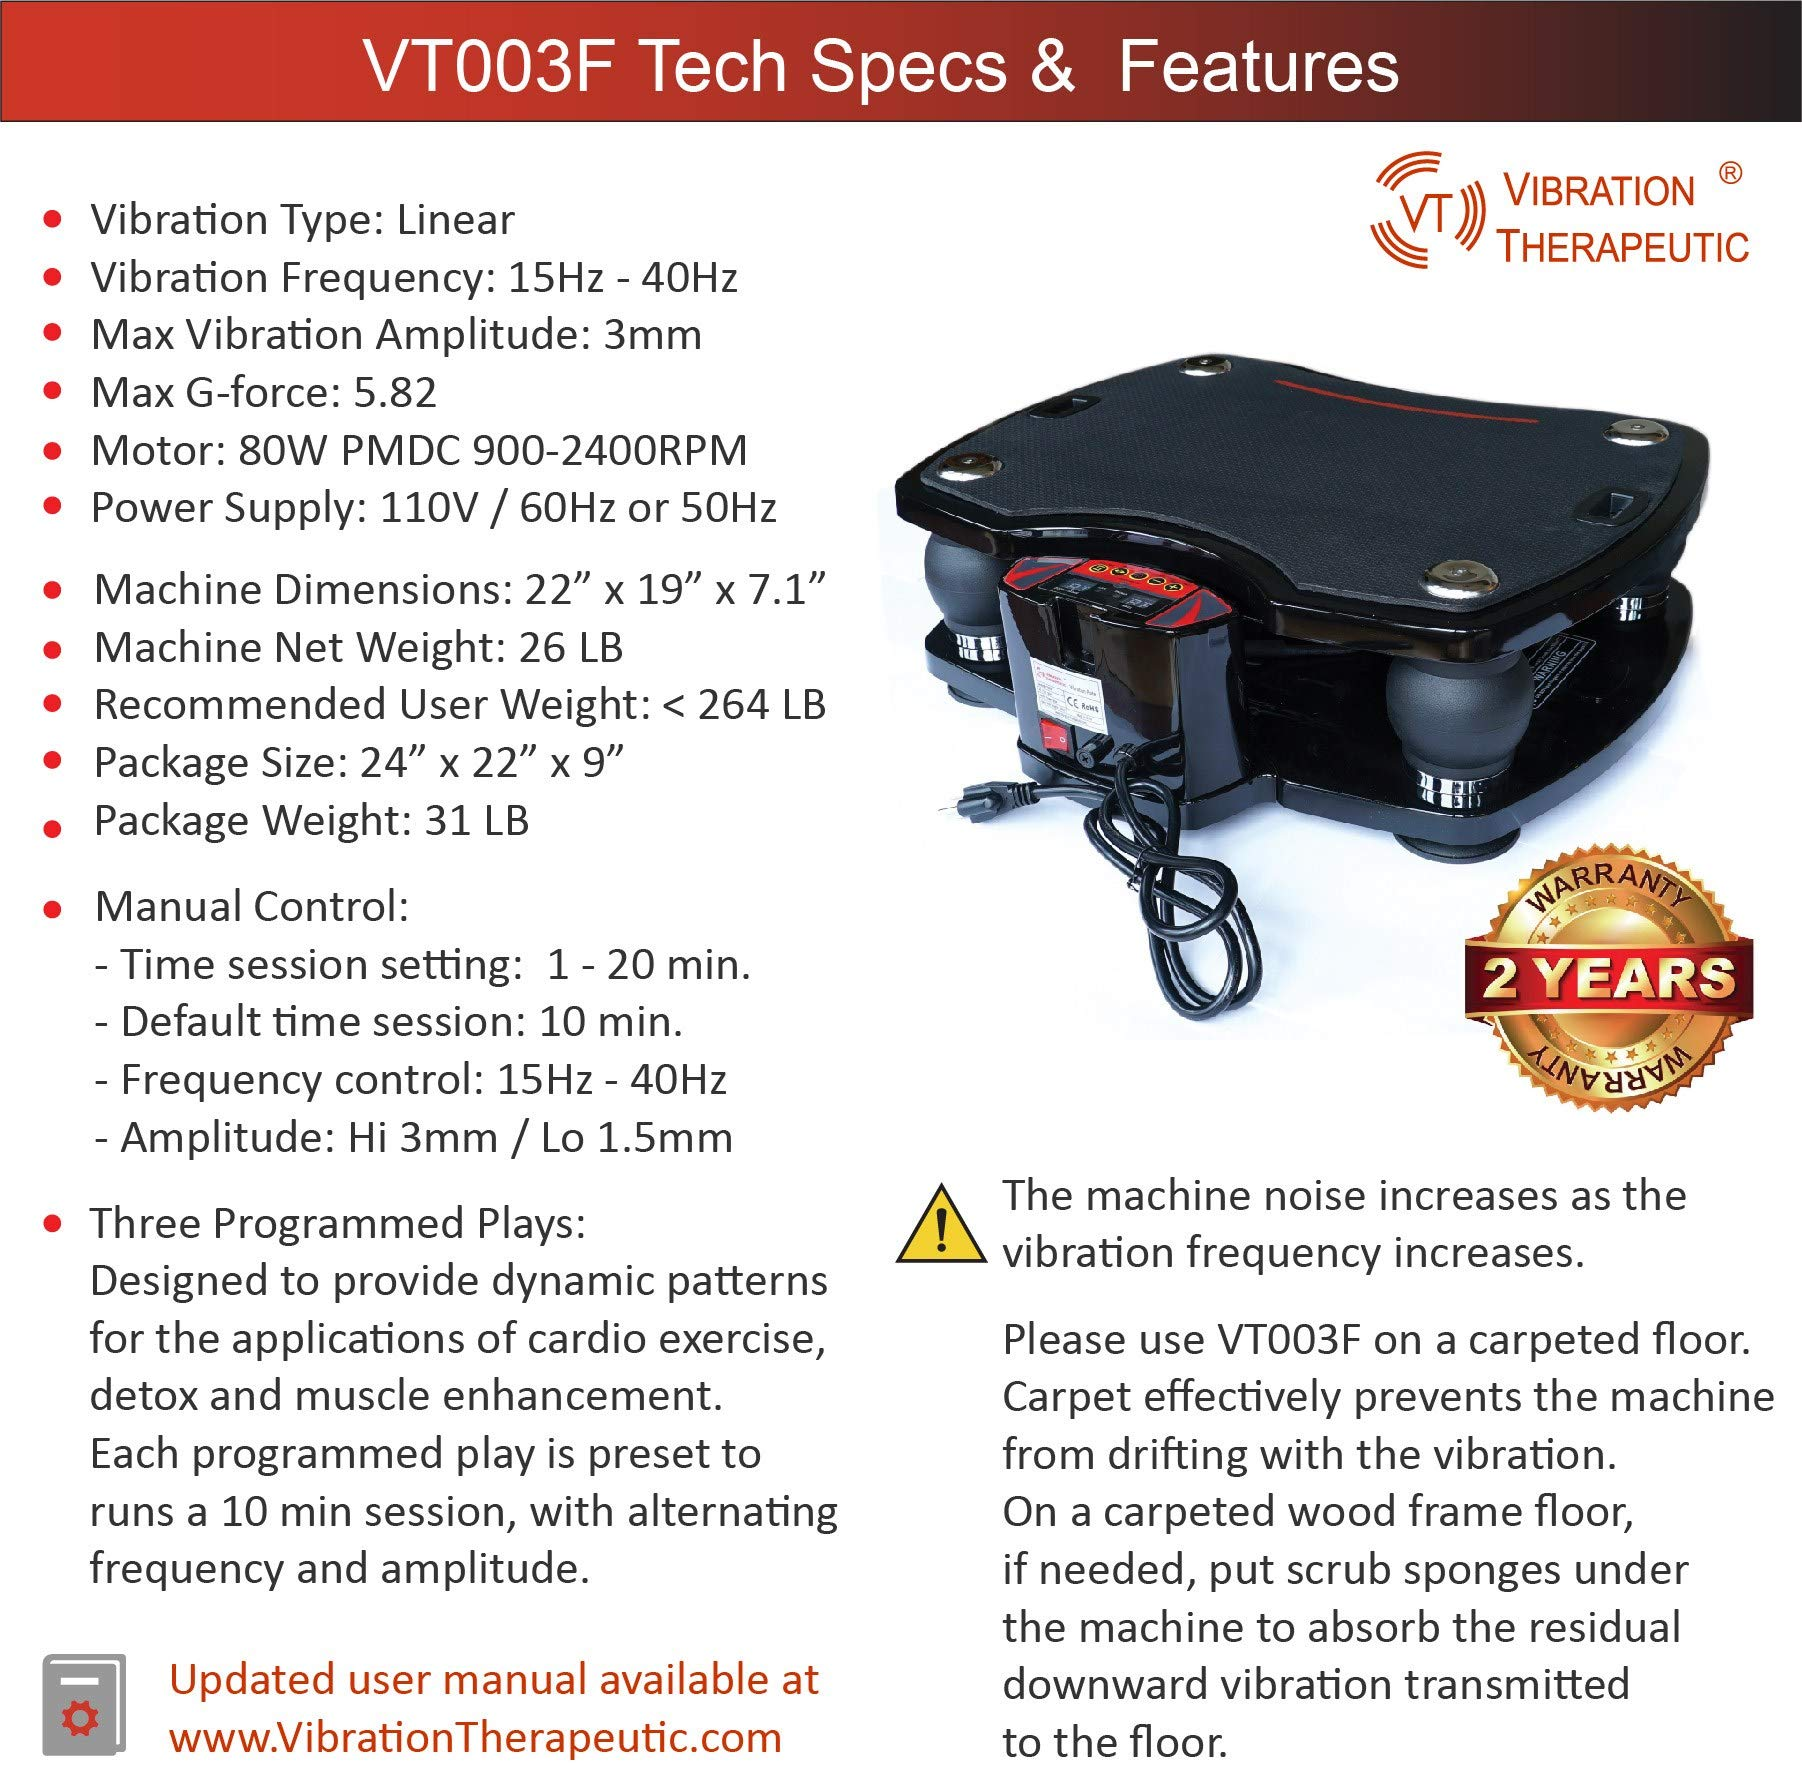 VT High Frequency Linear Vibration Plate Machine, Deep Tissue Vibration 15-40 Hz, Fitness and Therapy, Model VT003F by VT VIBRATION THERAPEUTIC (Image #2)